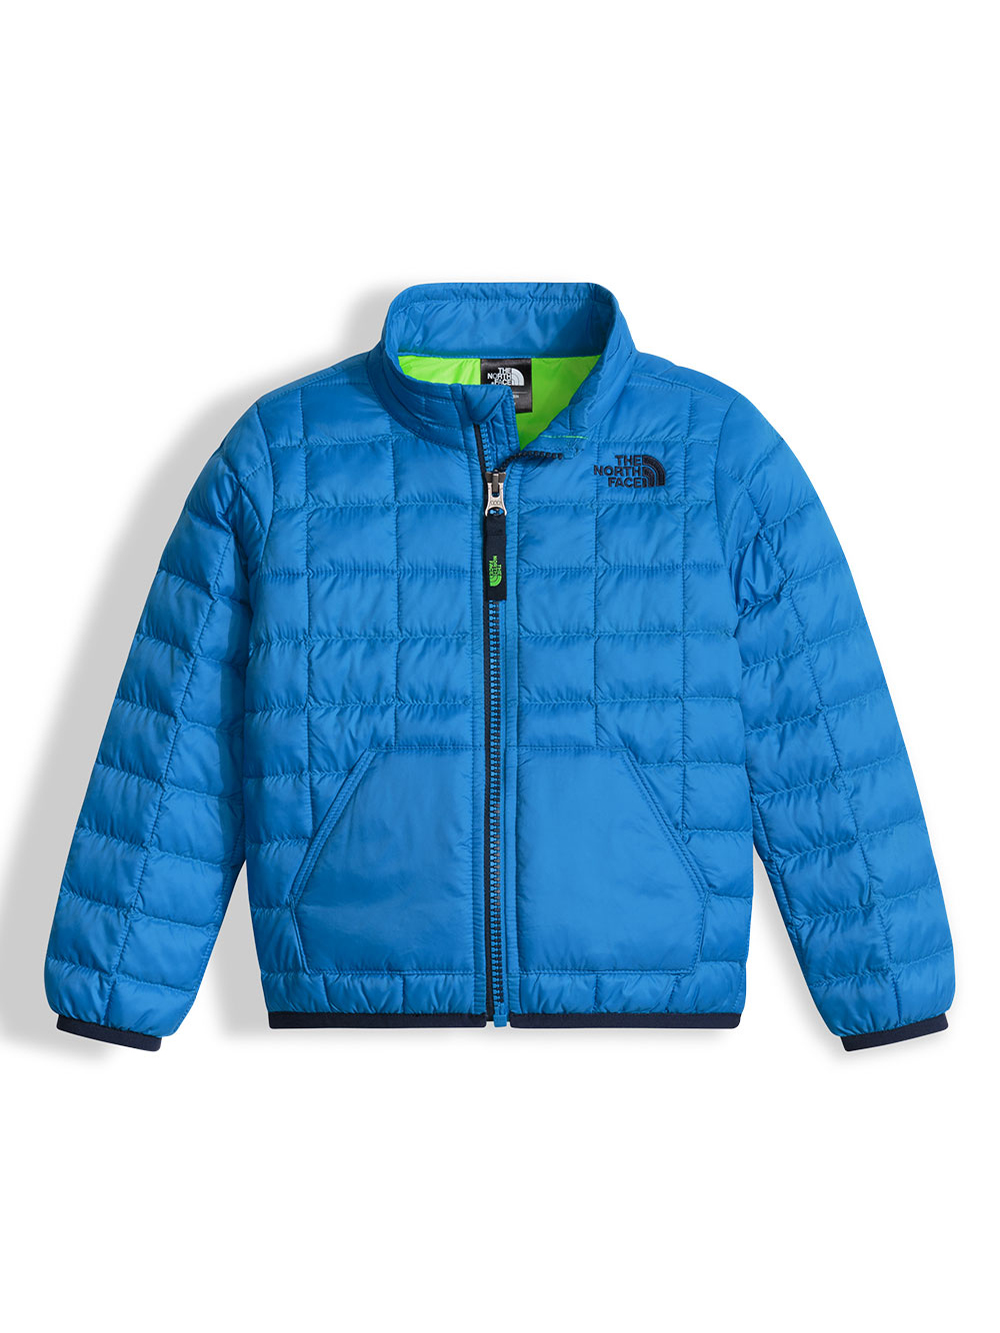 The North Face Little Boys' Toddler Thermoball Full Zip Jacket (Sizes 2T - 4T) - clear lake blue, 3t